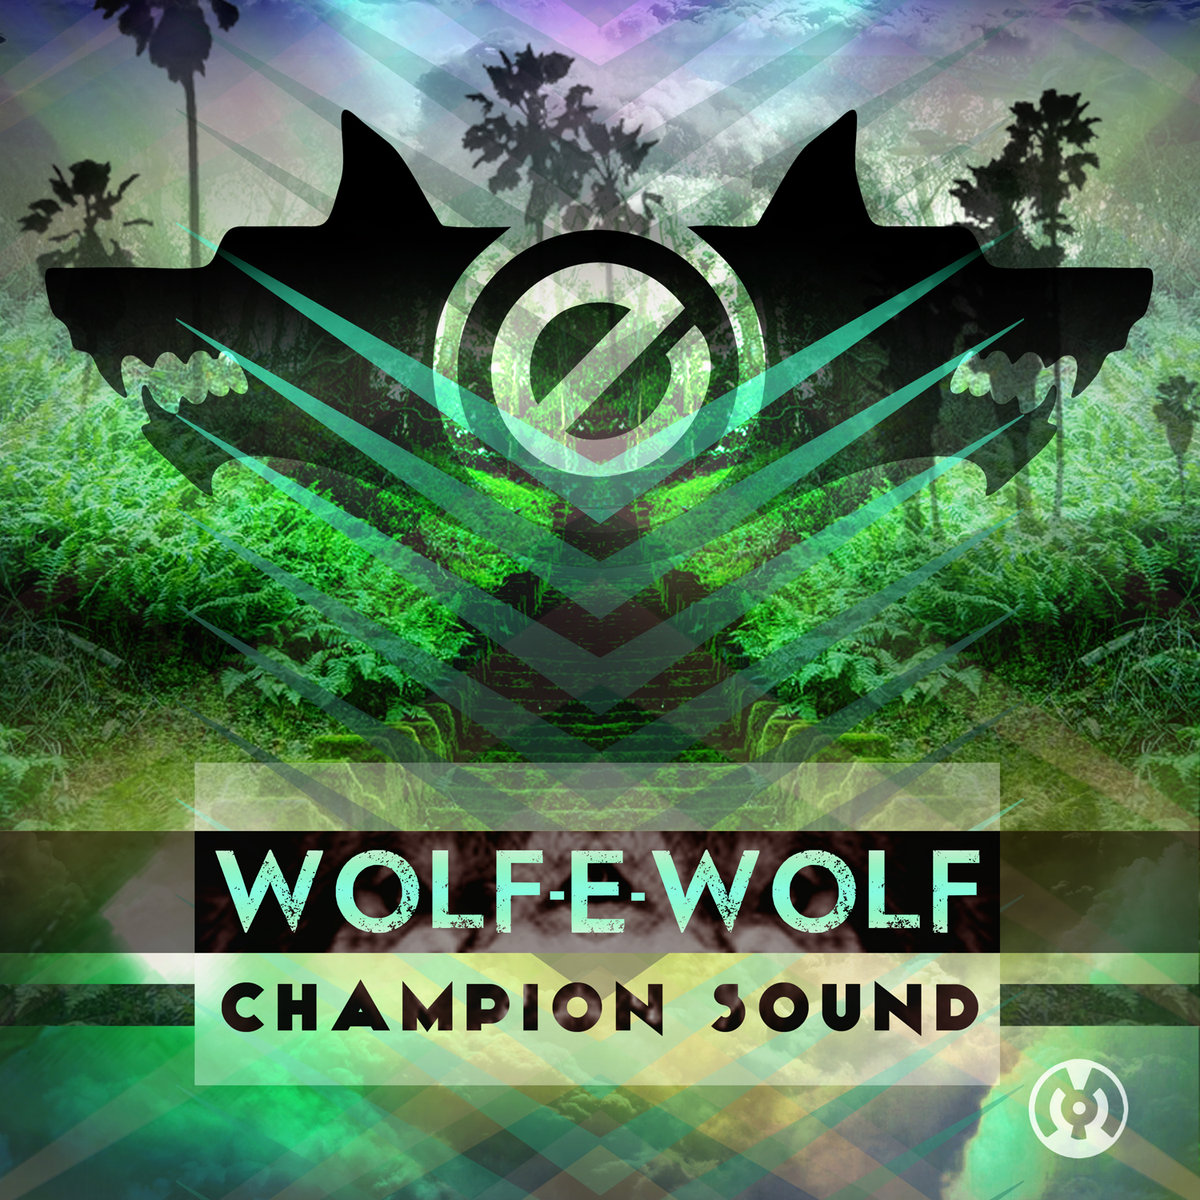 Wolf-e-Wolf - Skunk Trunk @ 'Champion Sound' album (electronic, dubstep)